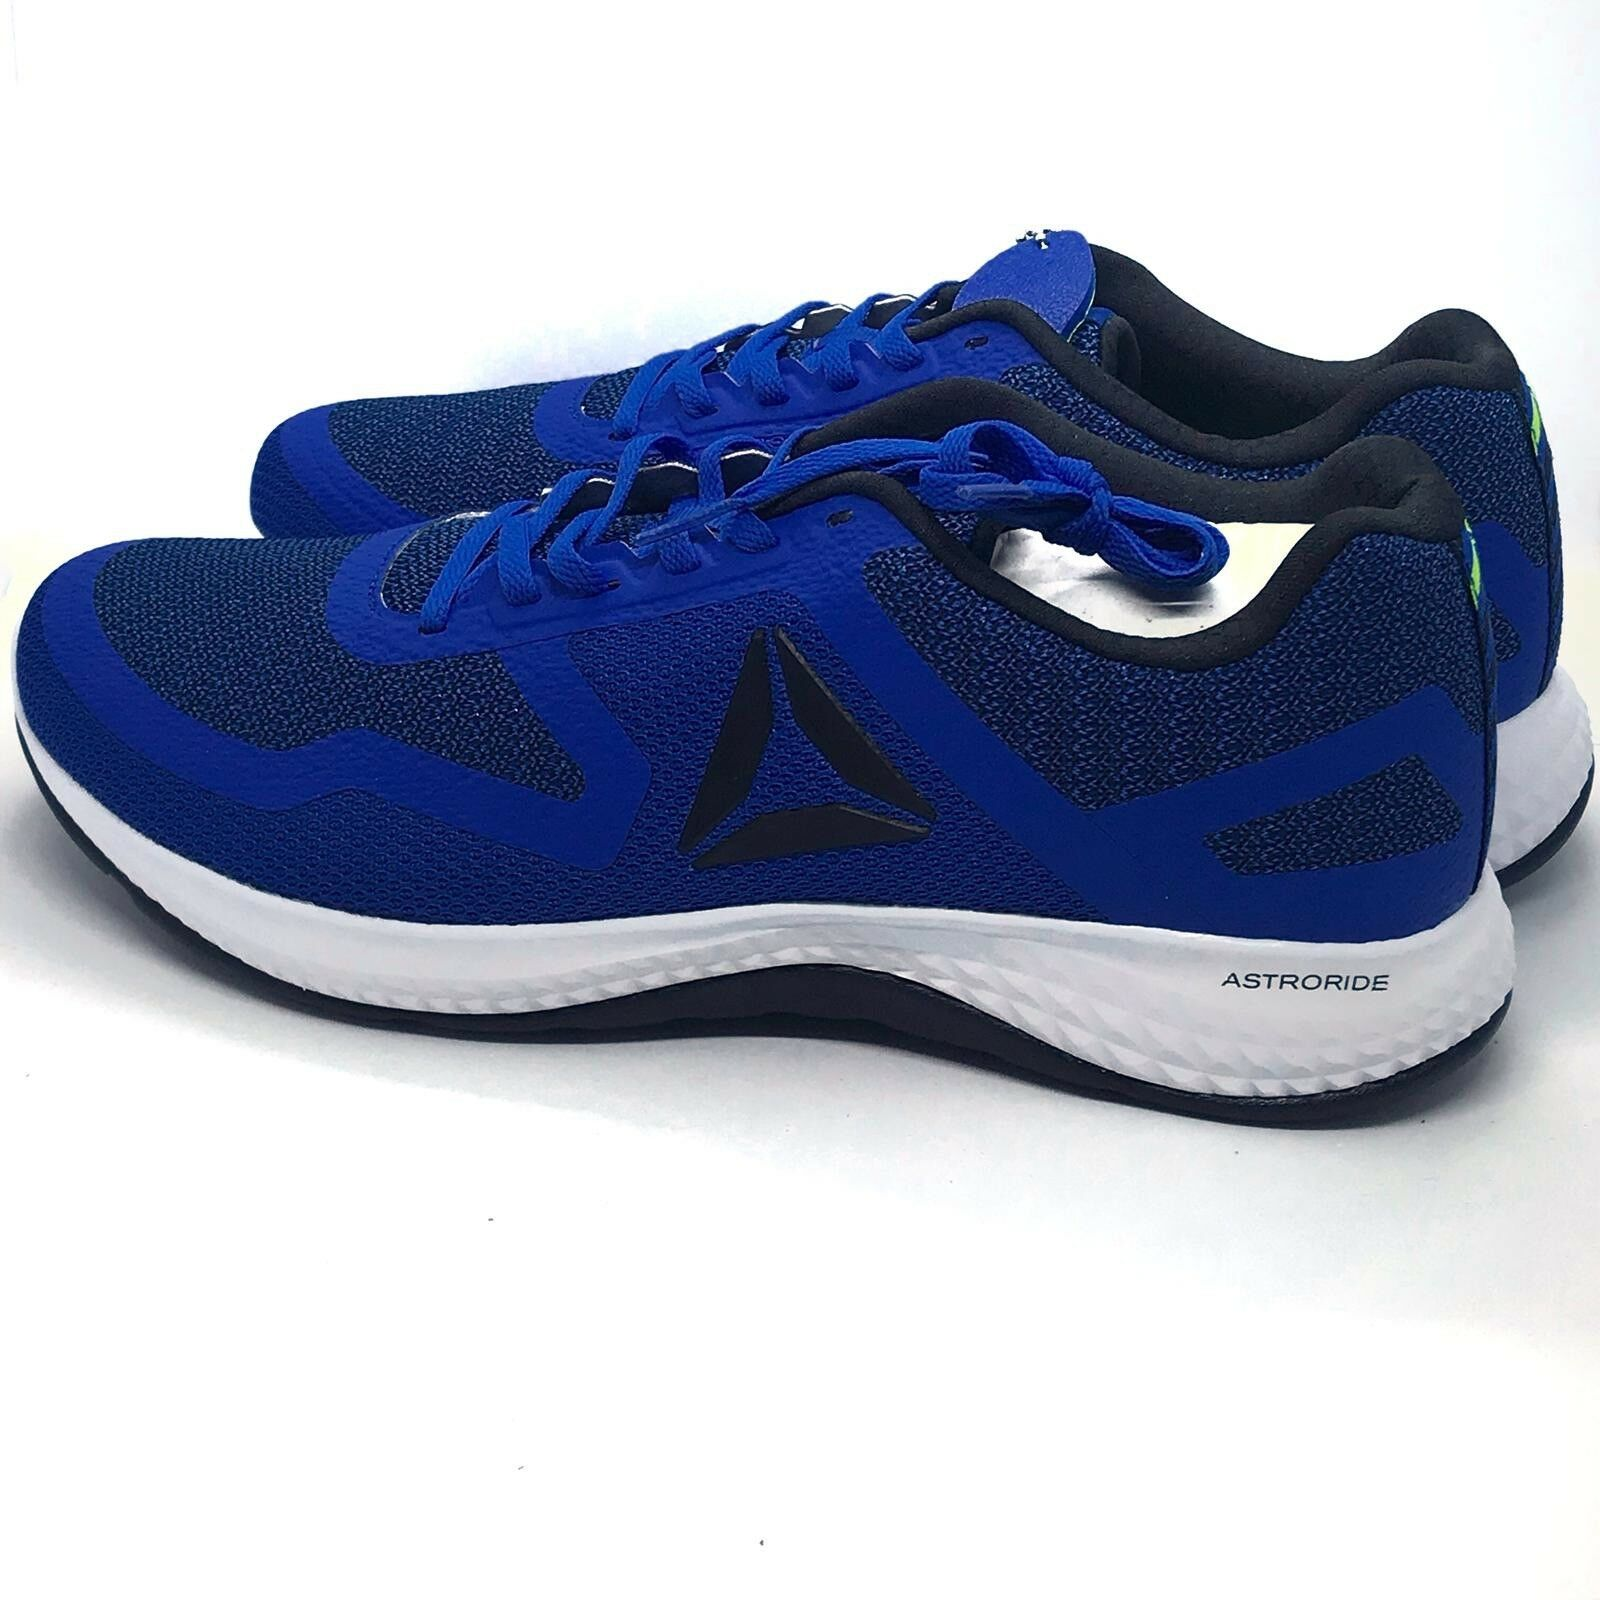 New Reebok Mens Astroride Duo bluee Running shoes Size 11